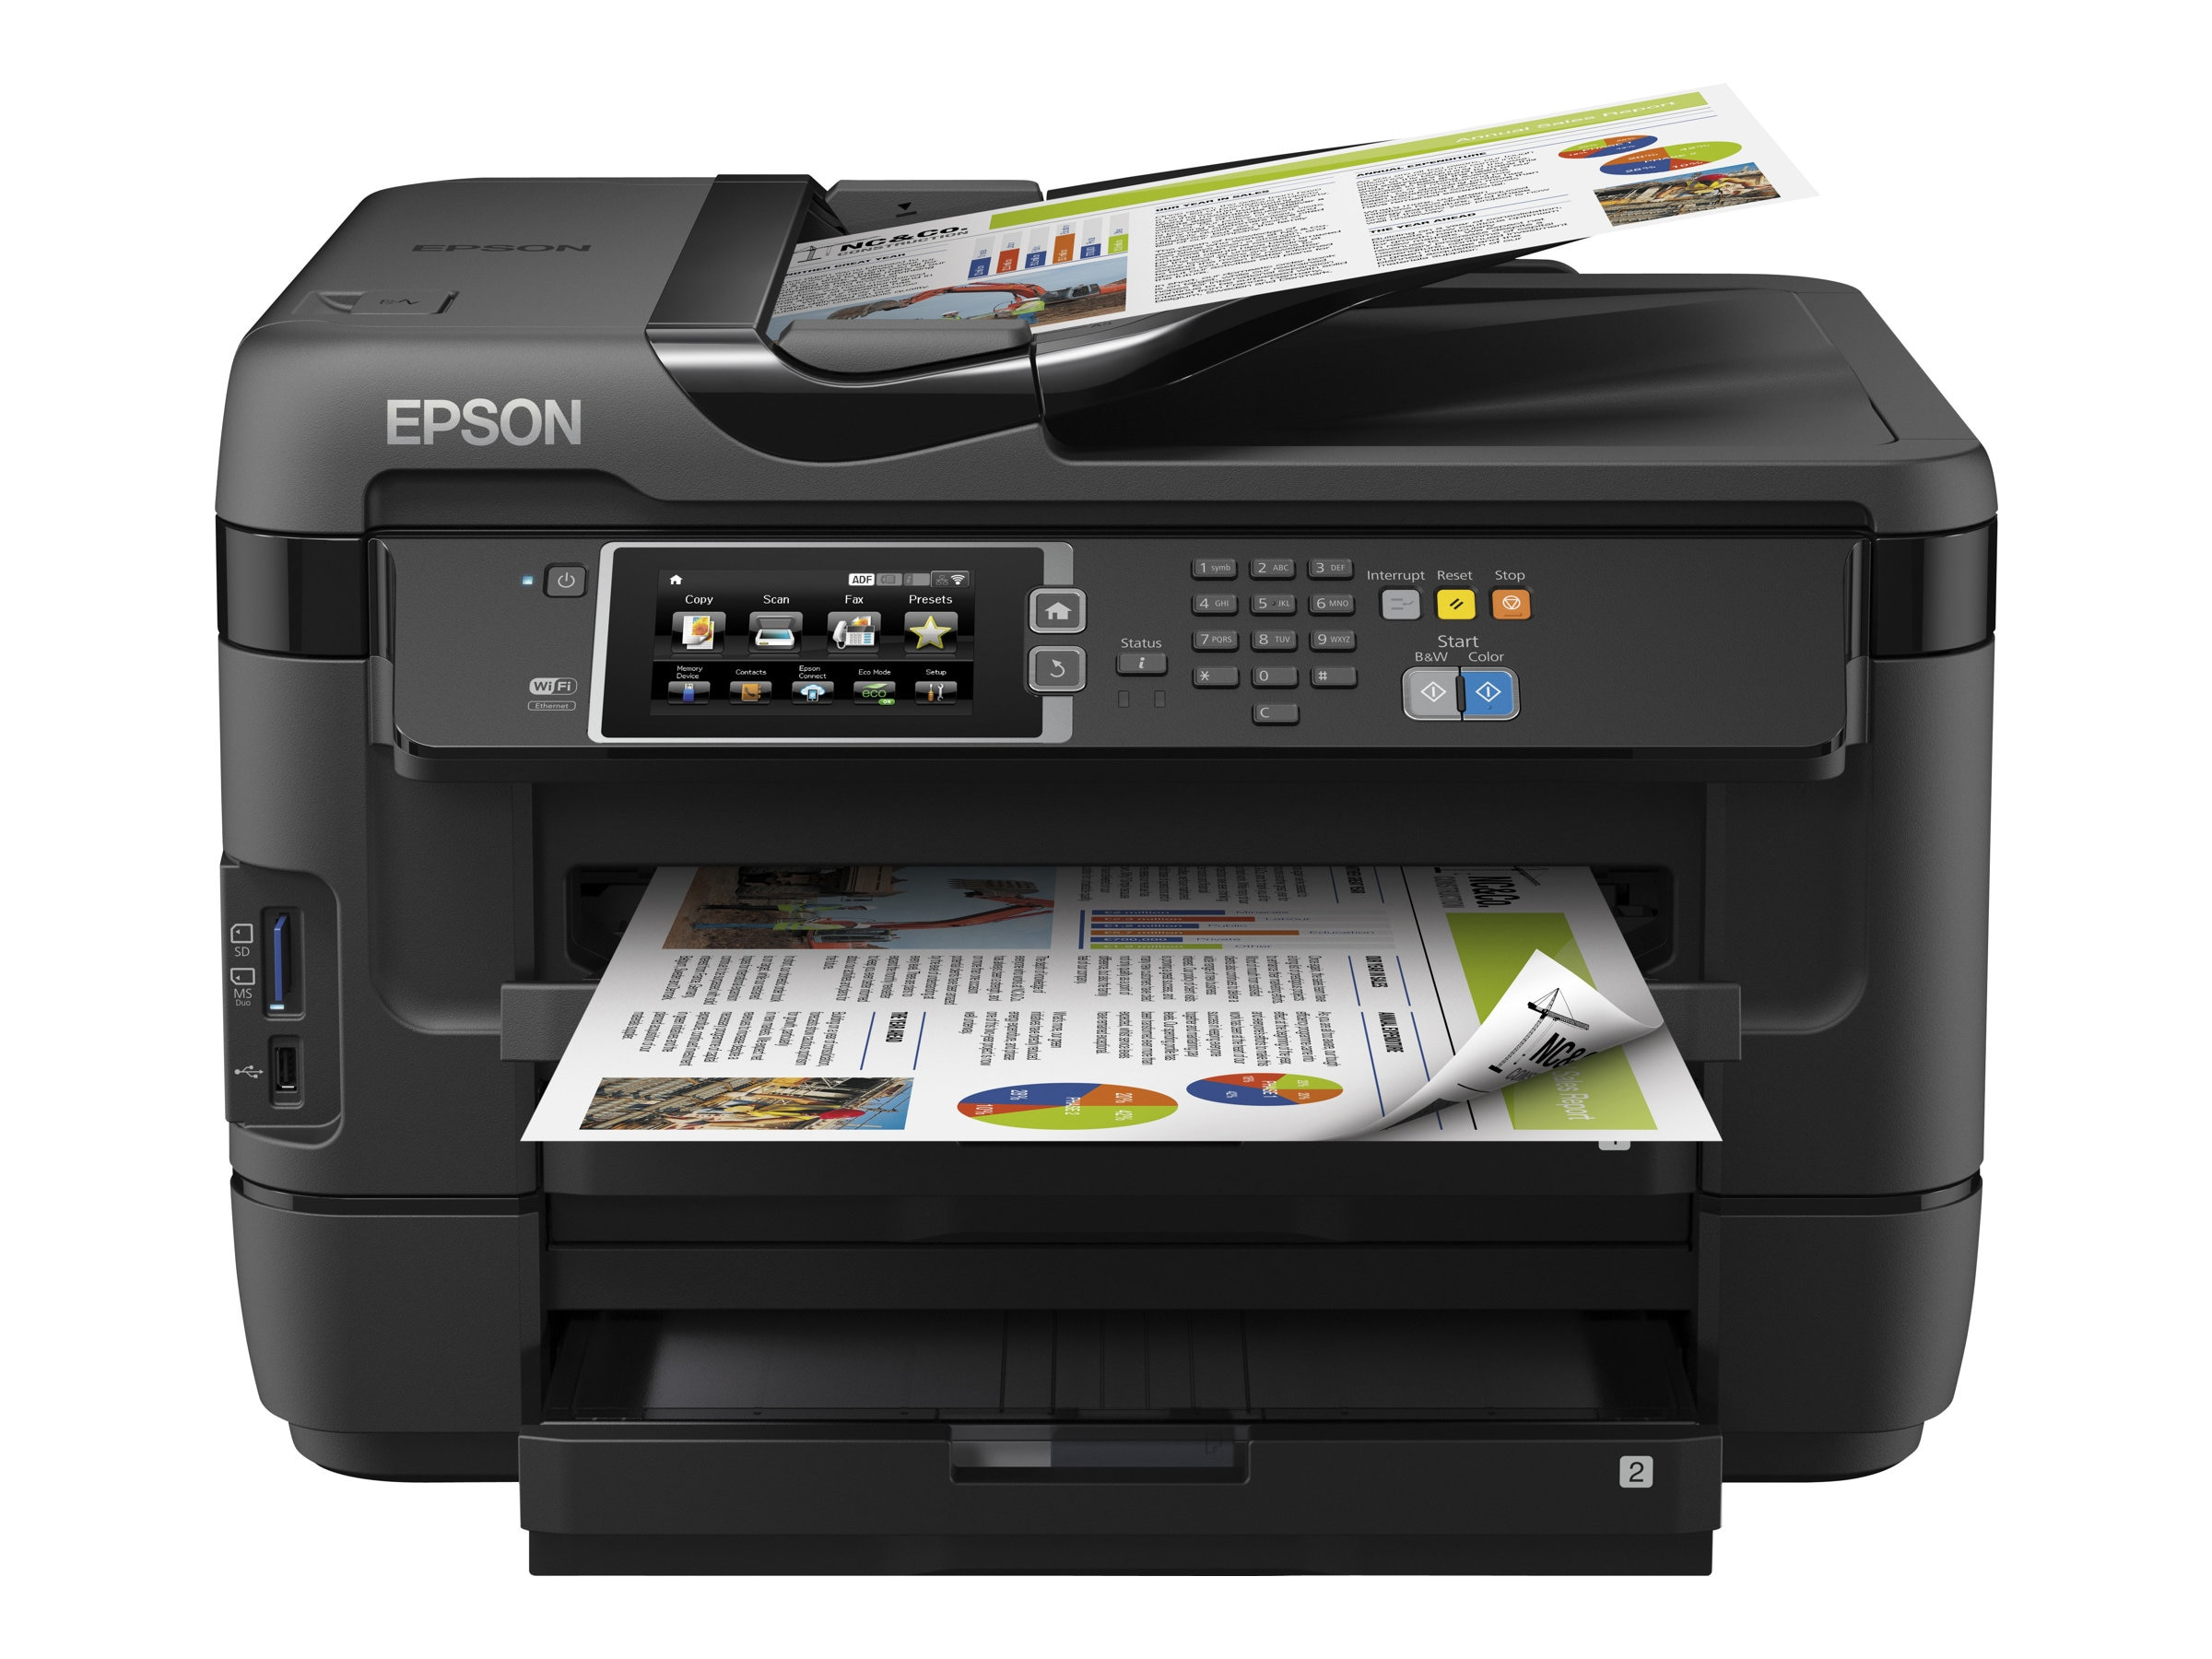 Epson WorkForce WF-7620 All-In-One Printer - $299.99 less instant rebate of $45.00, C11CC97201, 17456717, MultiFunction - Ink-Jet